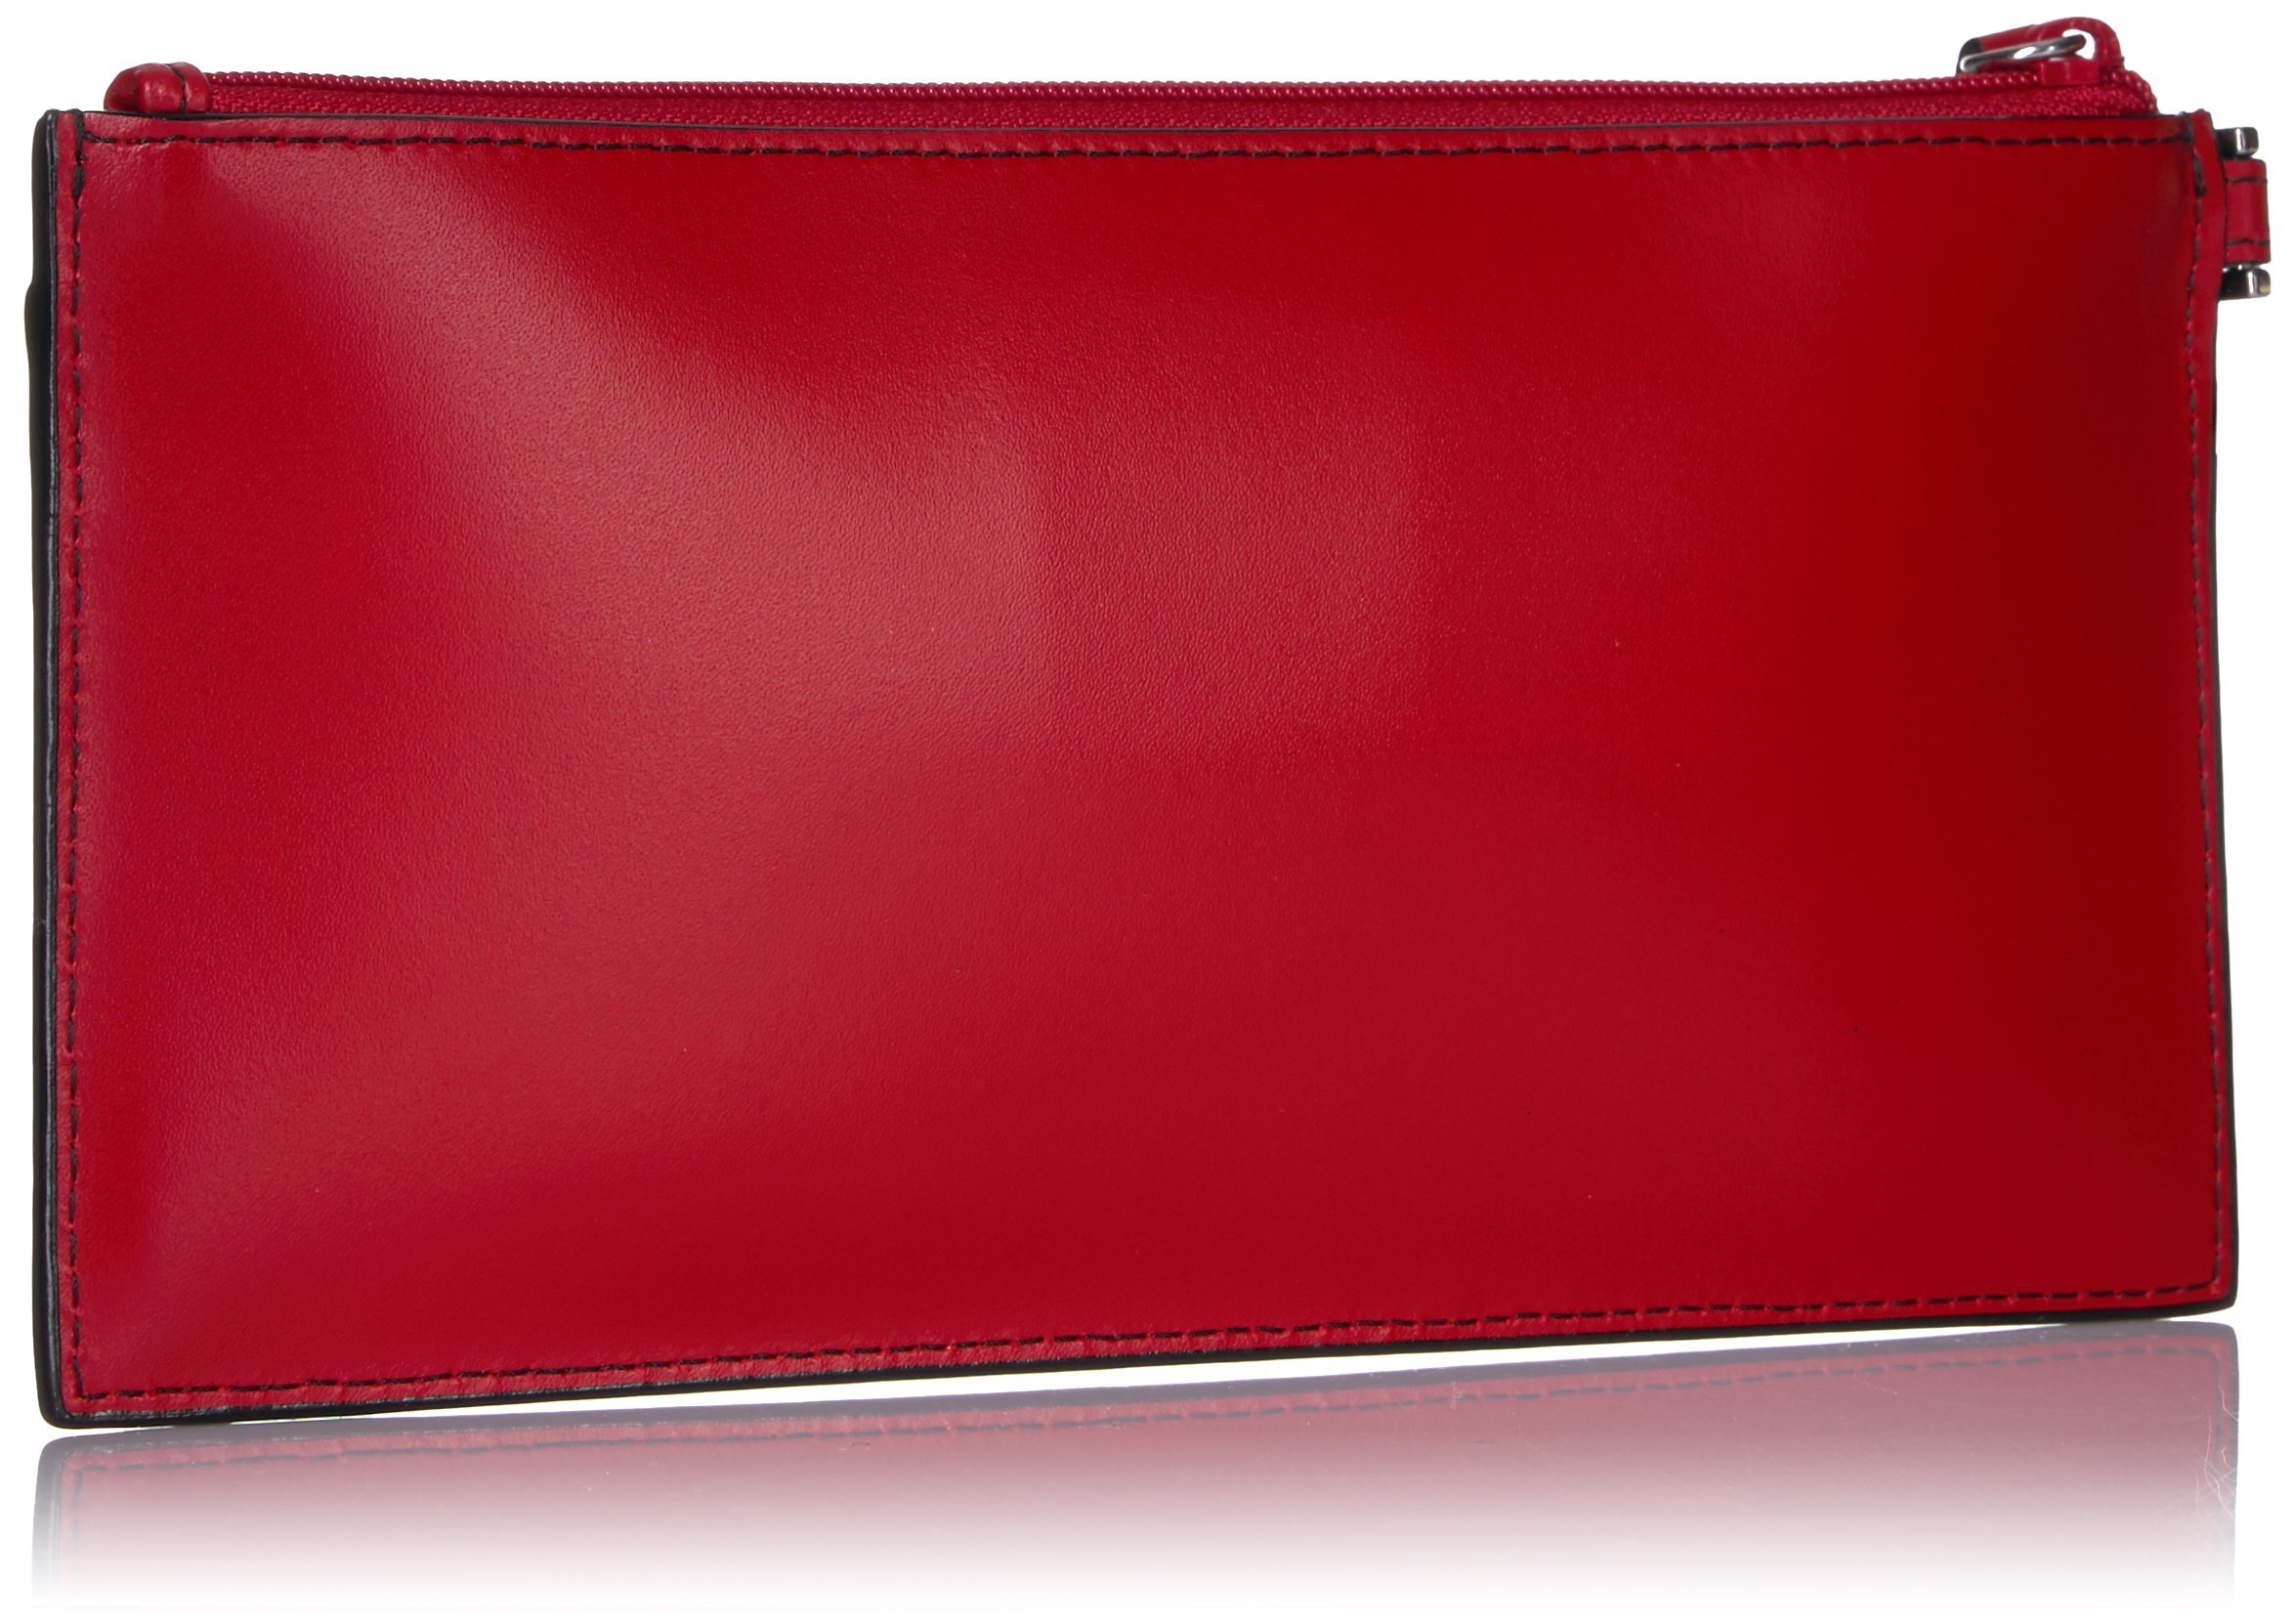 Lodis Audrey Rfid Queenie Wallet With Removable Card Case Credit Card Holder by Lodis (Image #2)